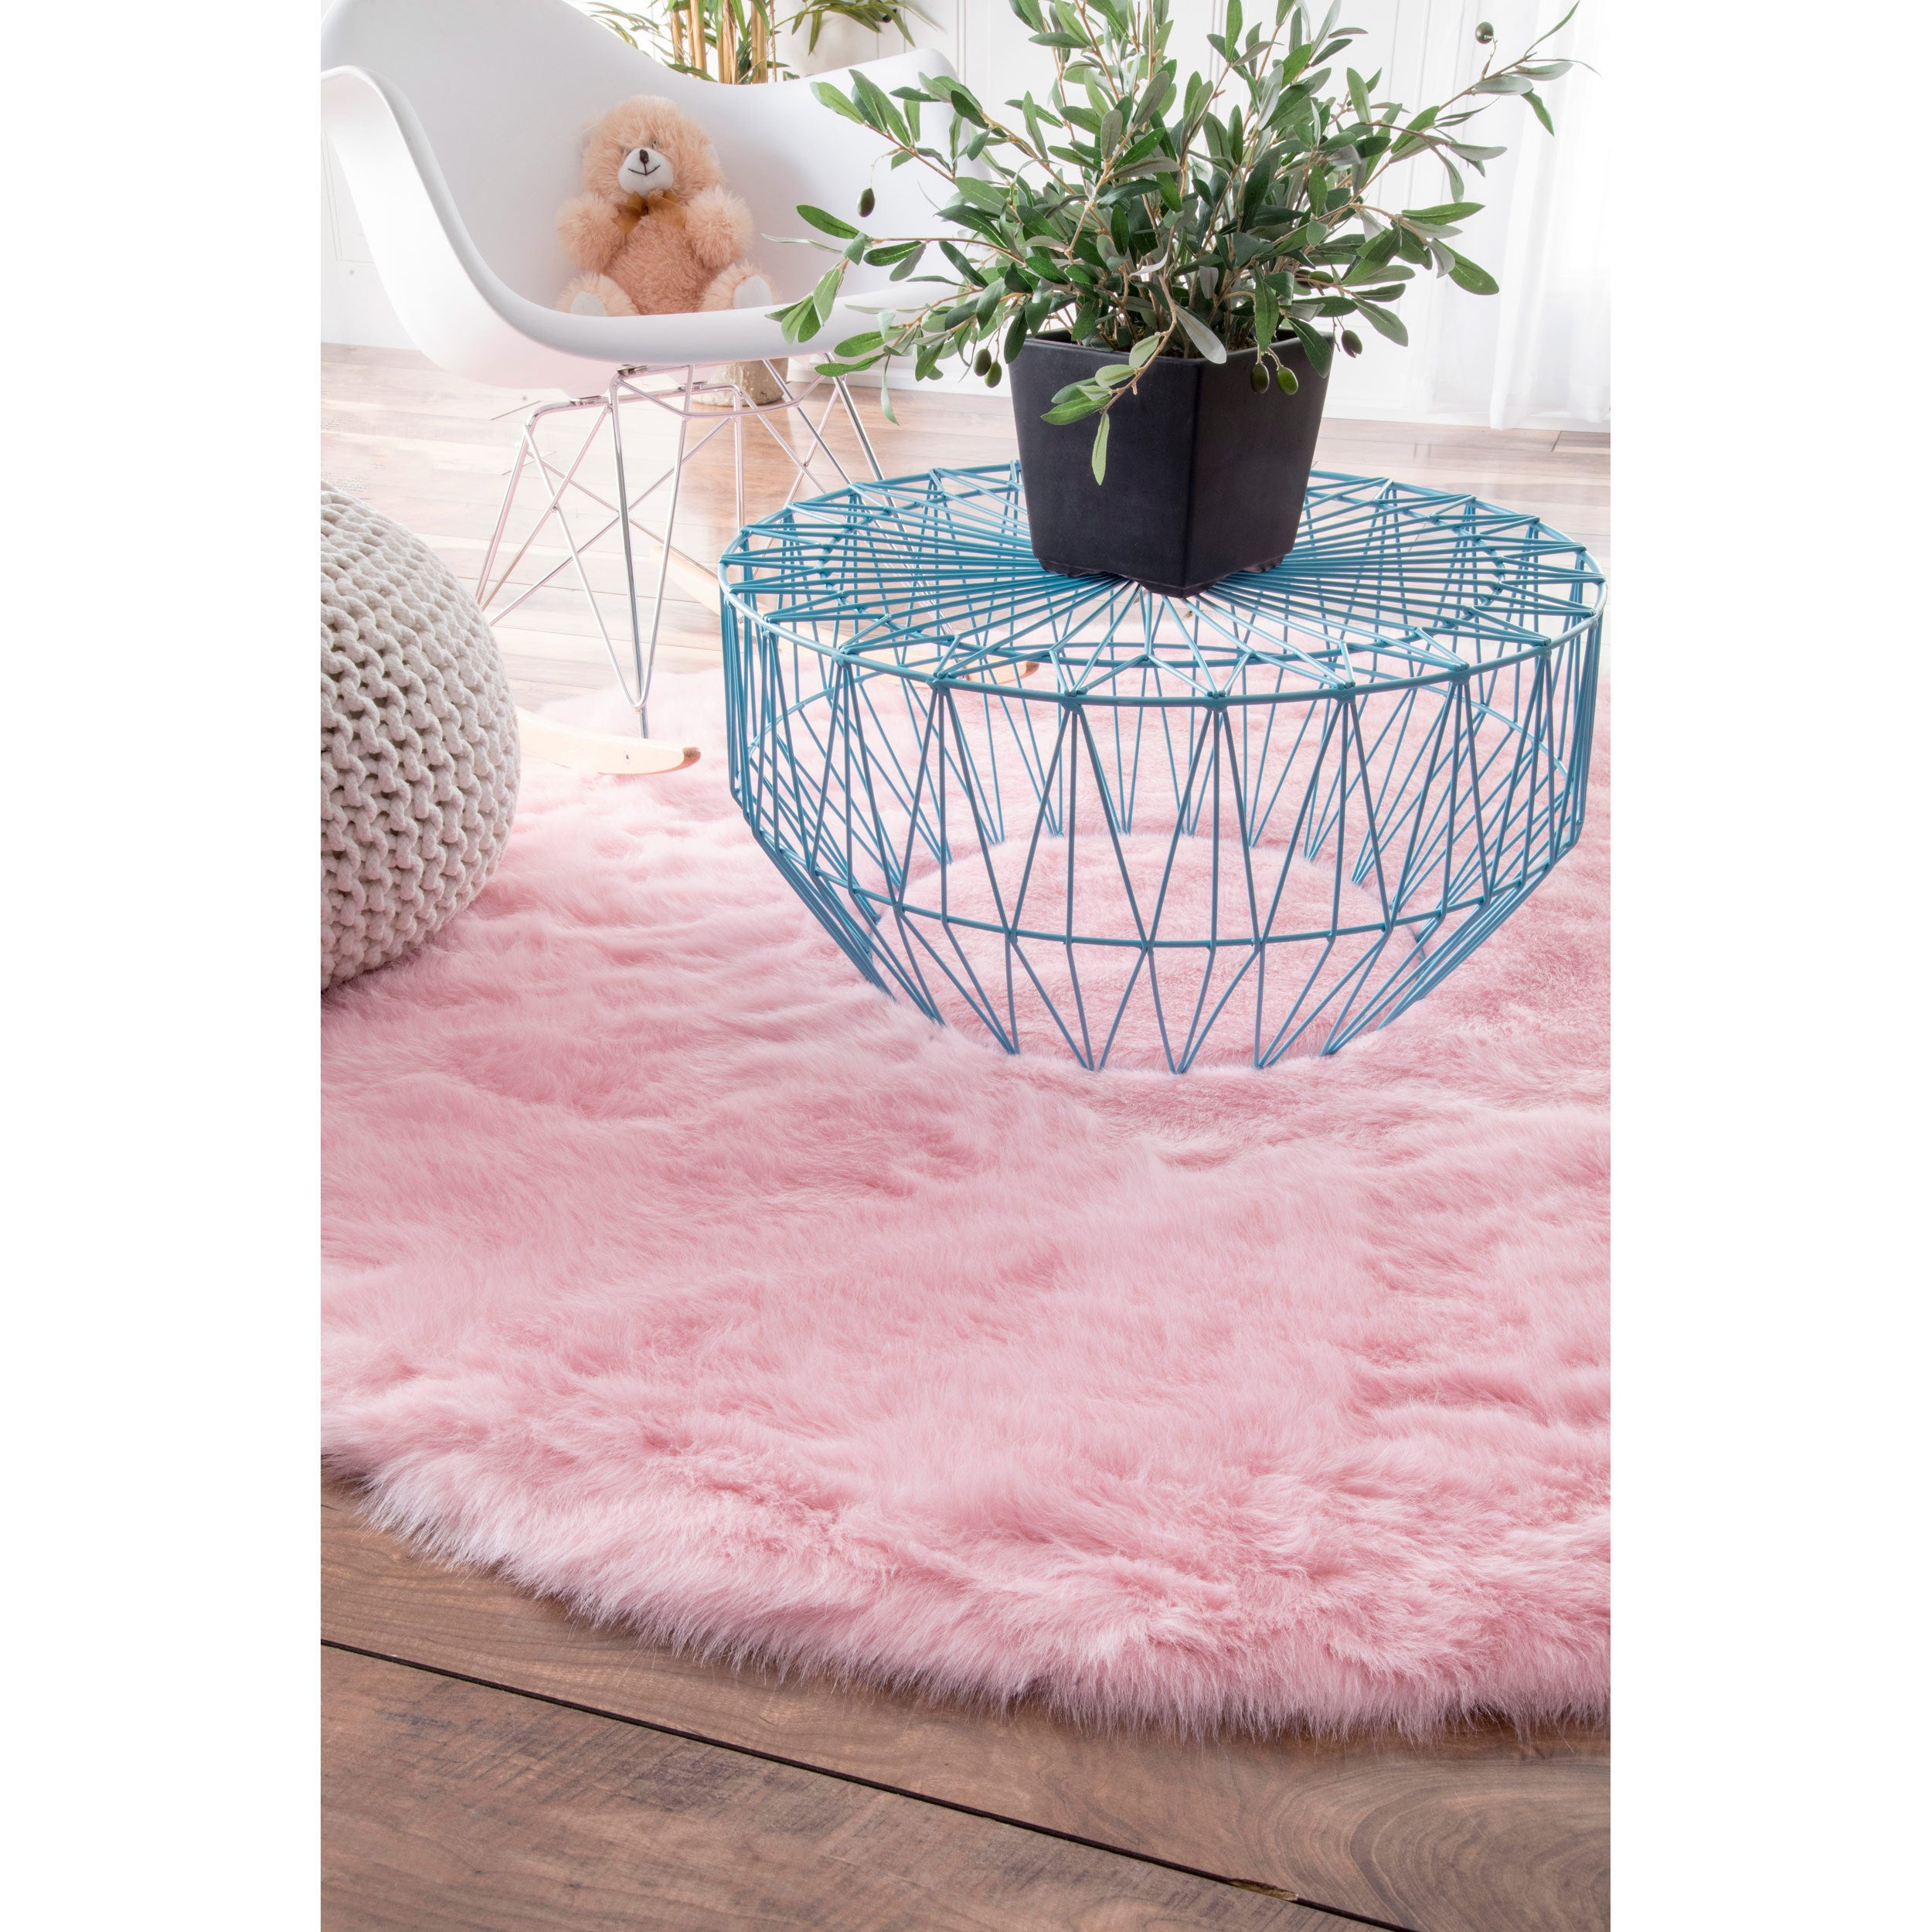 improvement nursery star rug fresh round carpet kids area up pink top pulliamdeffenbaugh for rugs large of childrens bedroom new photos boys baby road room home carpets bang fun mats